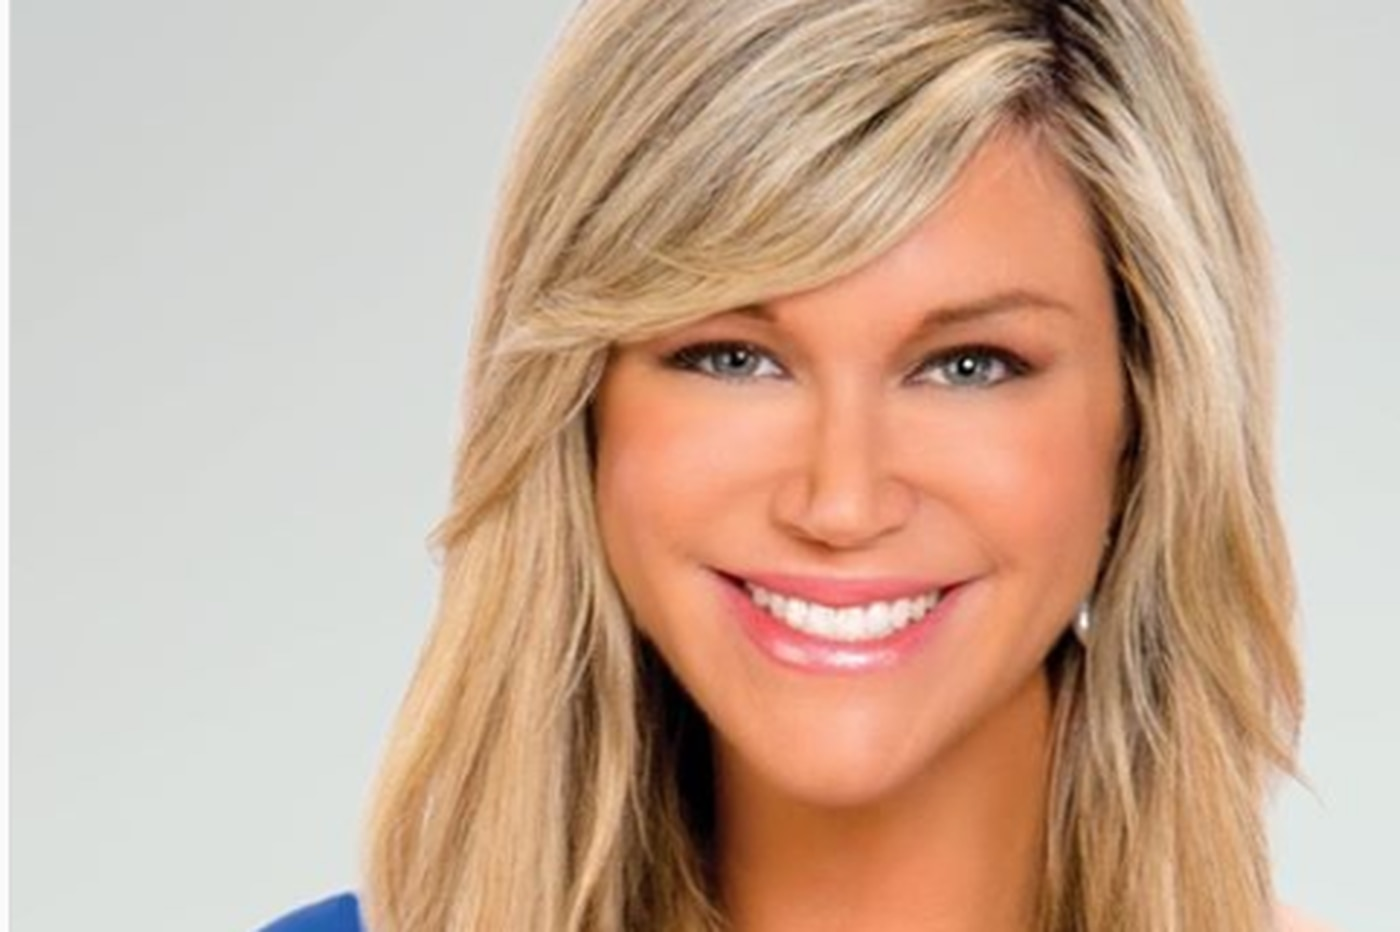 CBS3 cuts sports anchor Lesley Van Arsdall, other staffers, in slimming of its news operation